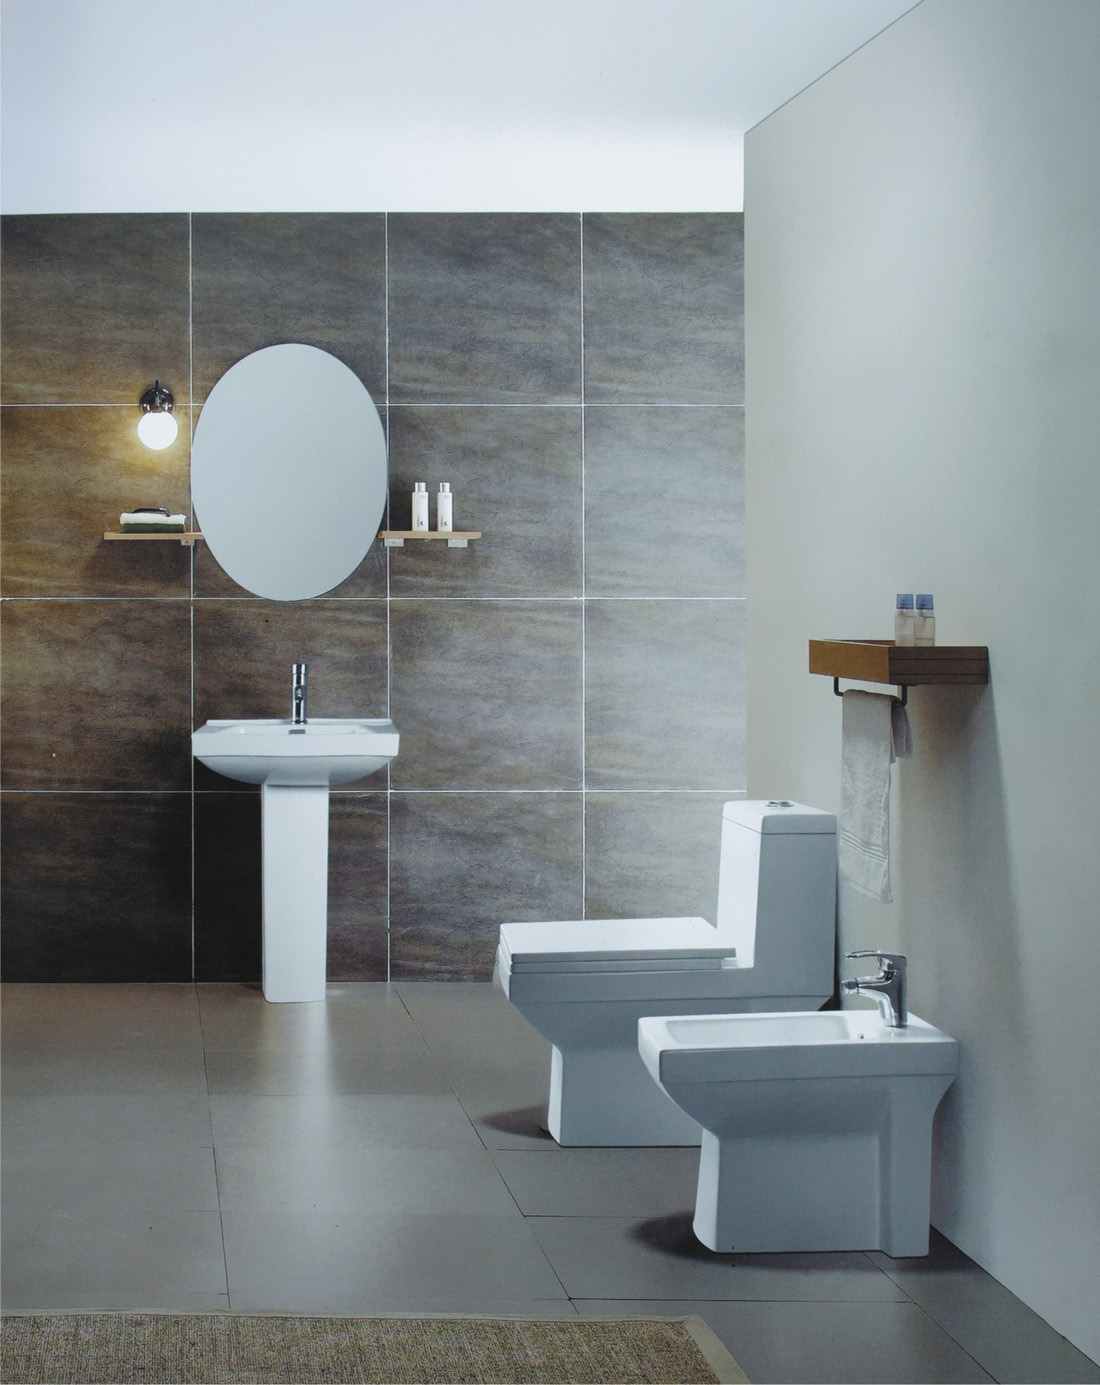 Bathroom Tiles Johnson India With Innovative Innovation In